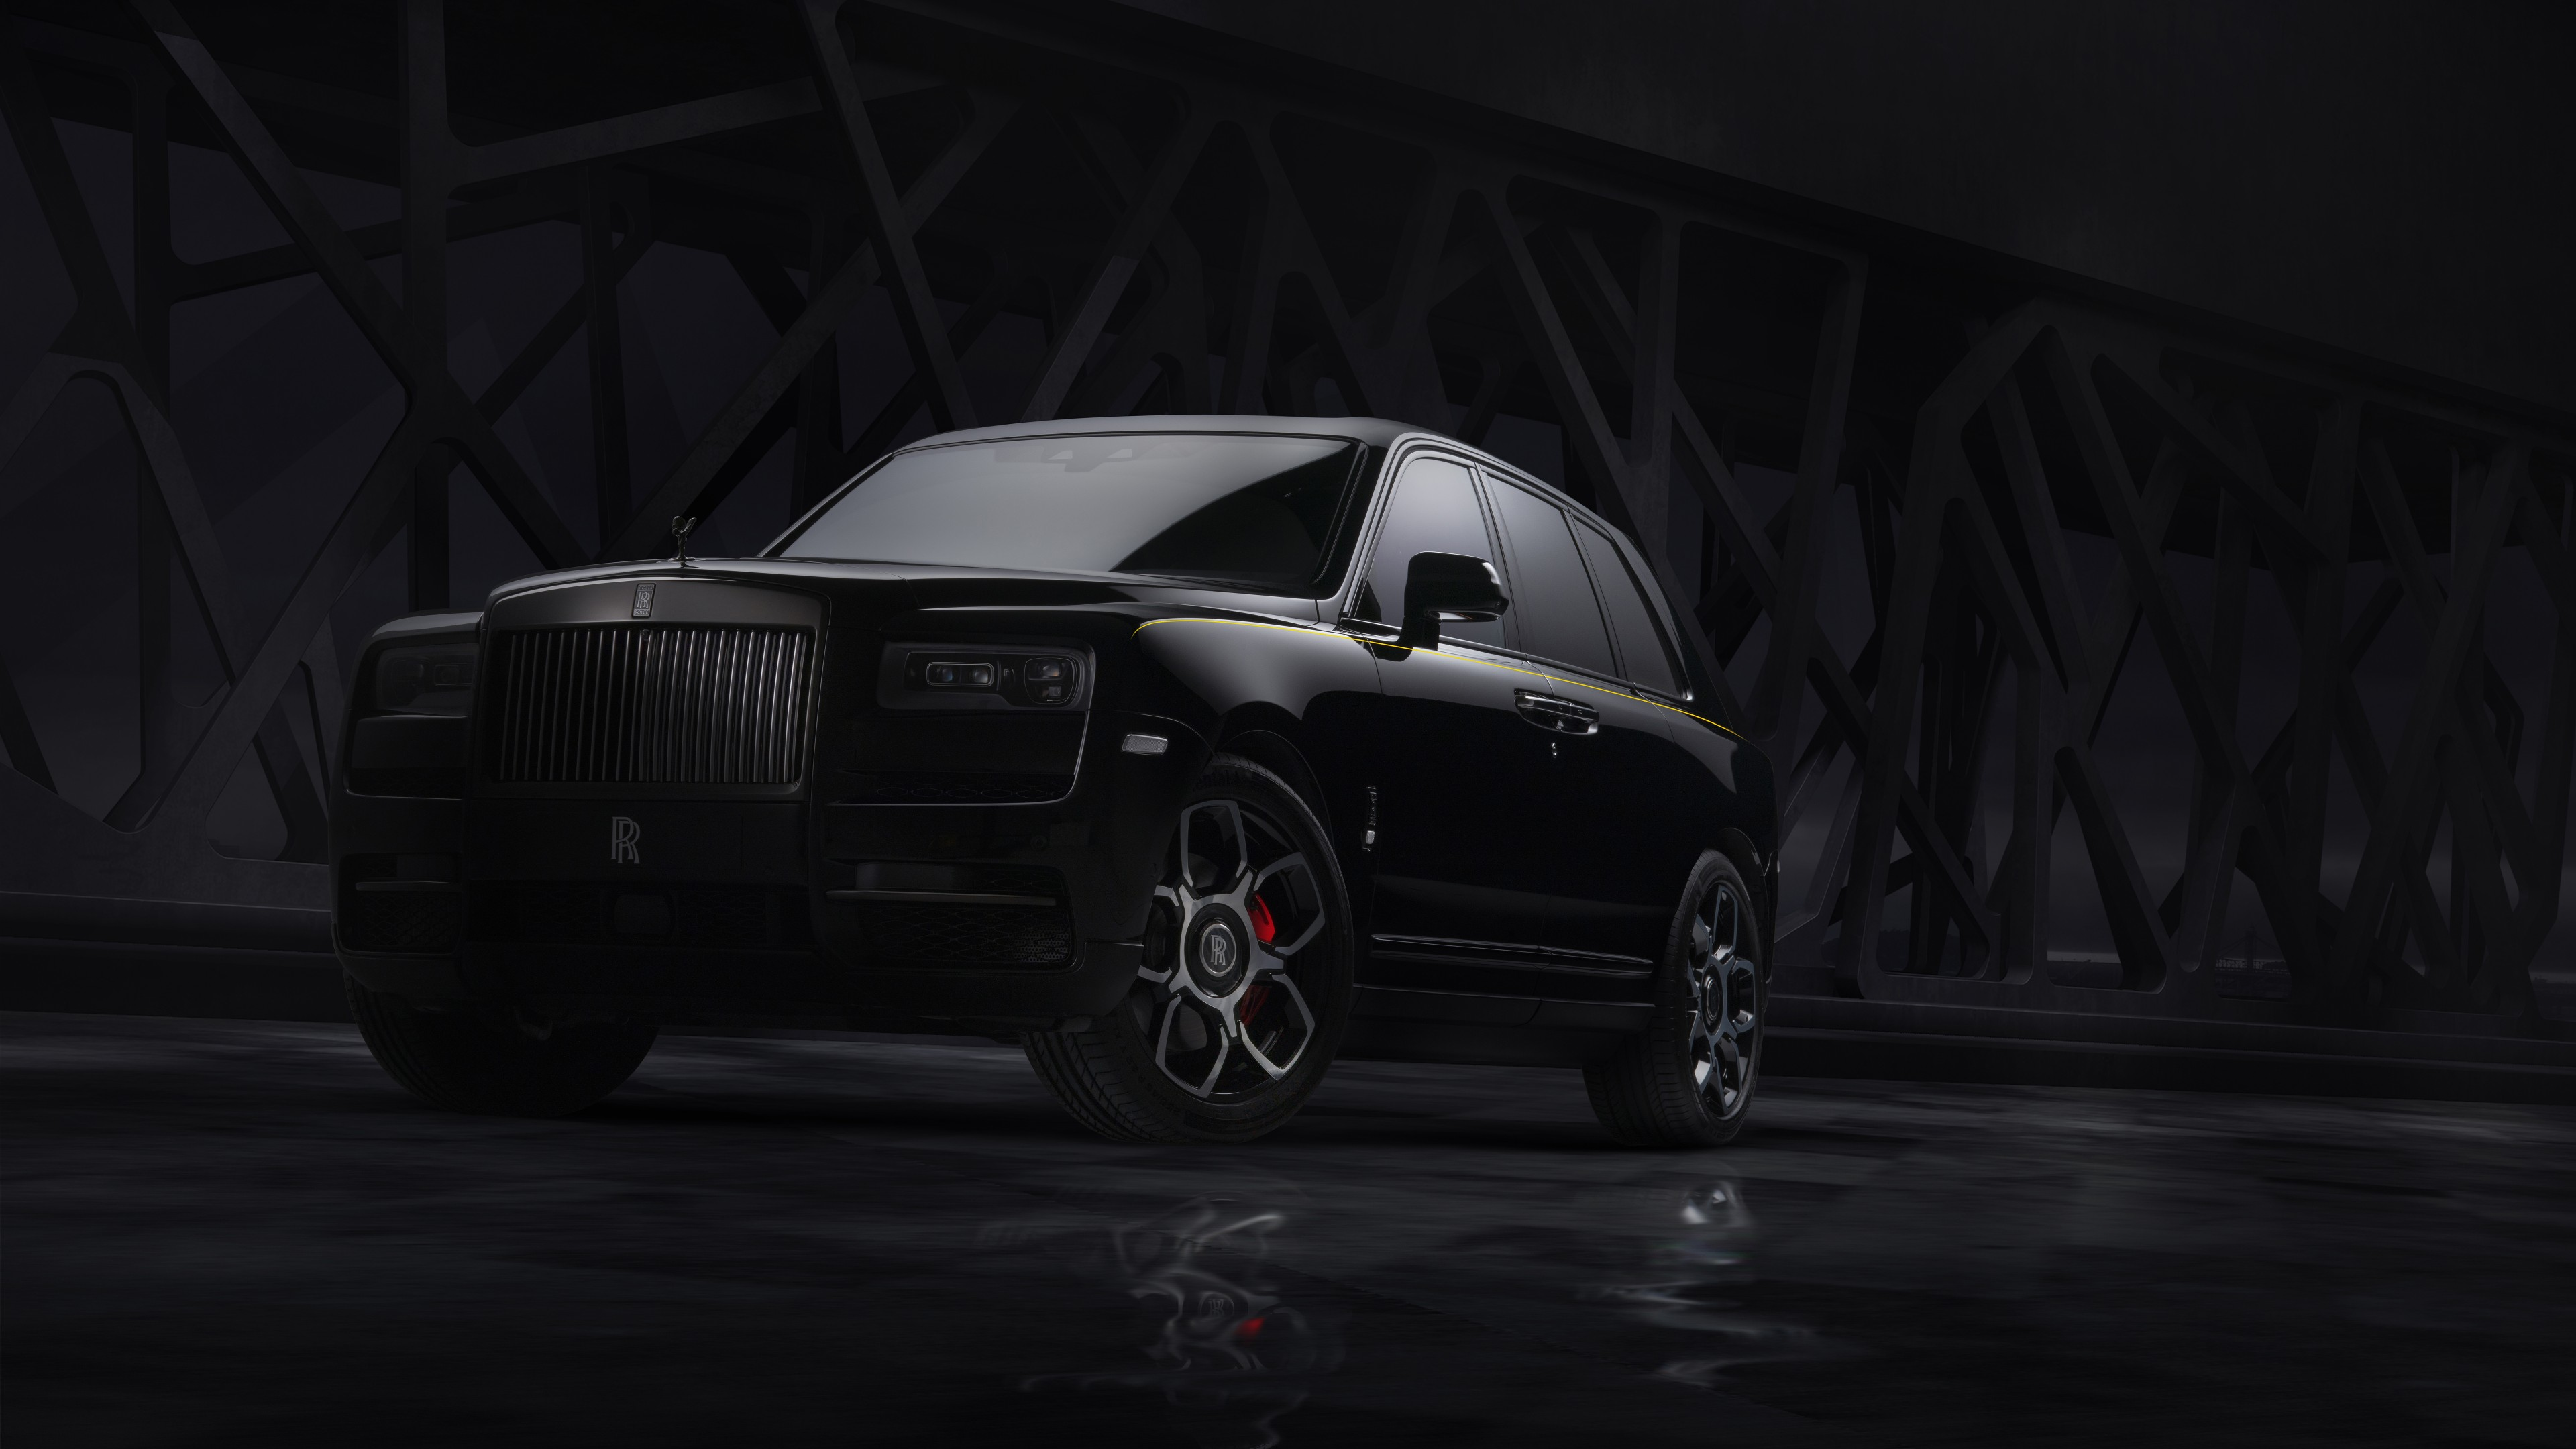 Rolls Royce Cullinan Black Badge 2019 4k 8k 2 Wallpaper Hd Car Wallpapers Id 13646